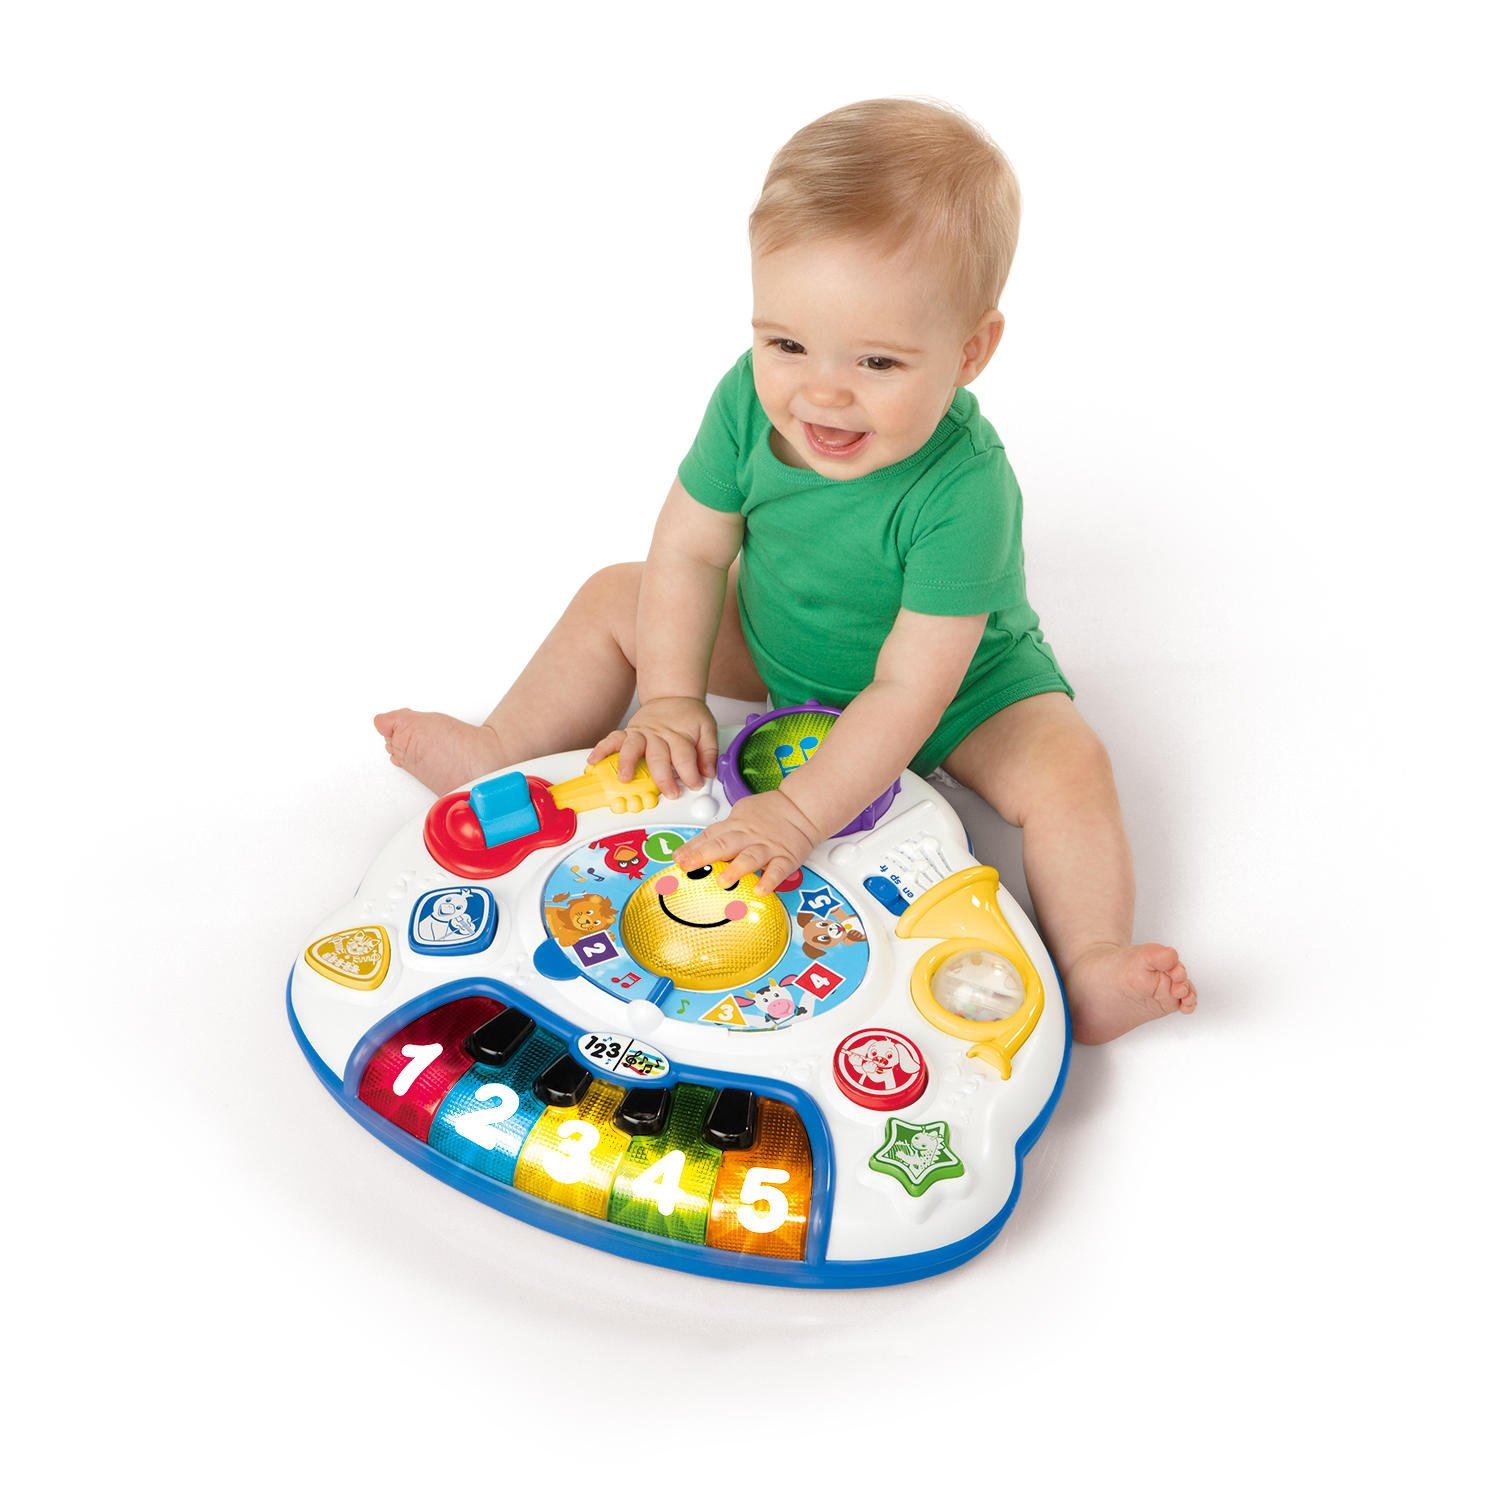 Marvelous Amazon.com : Baby Einstein Discovering Music Activity Table : Stationary  Stand Up Baby Activity Centers : Baby